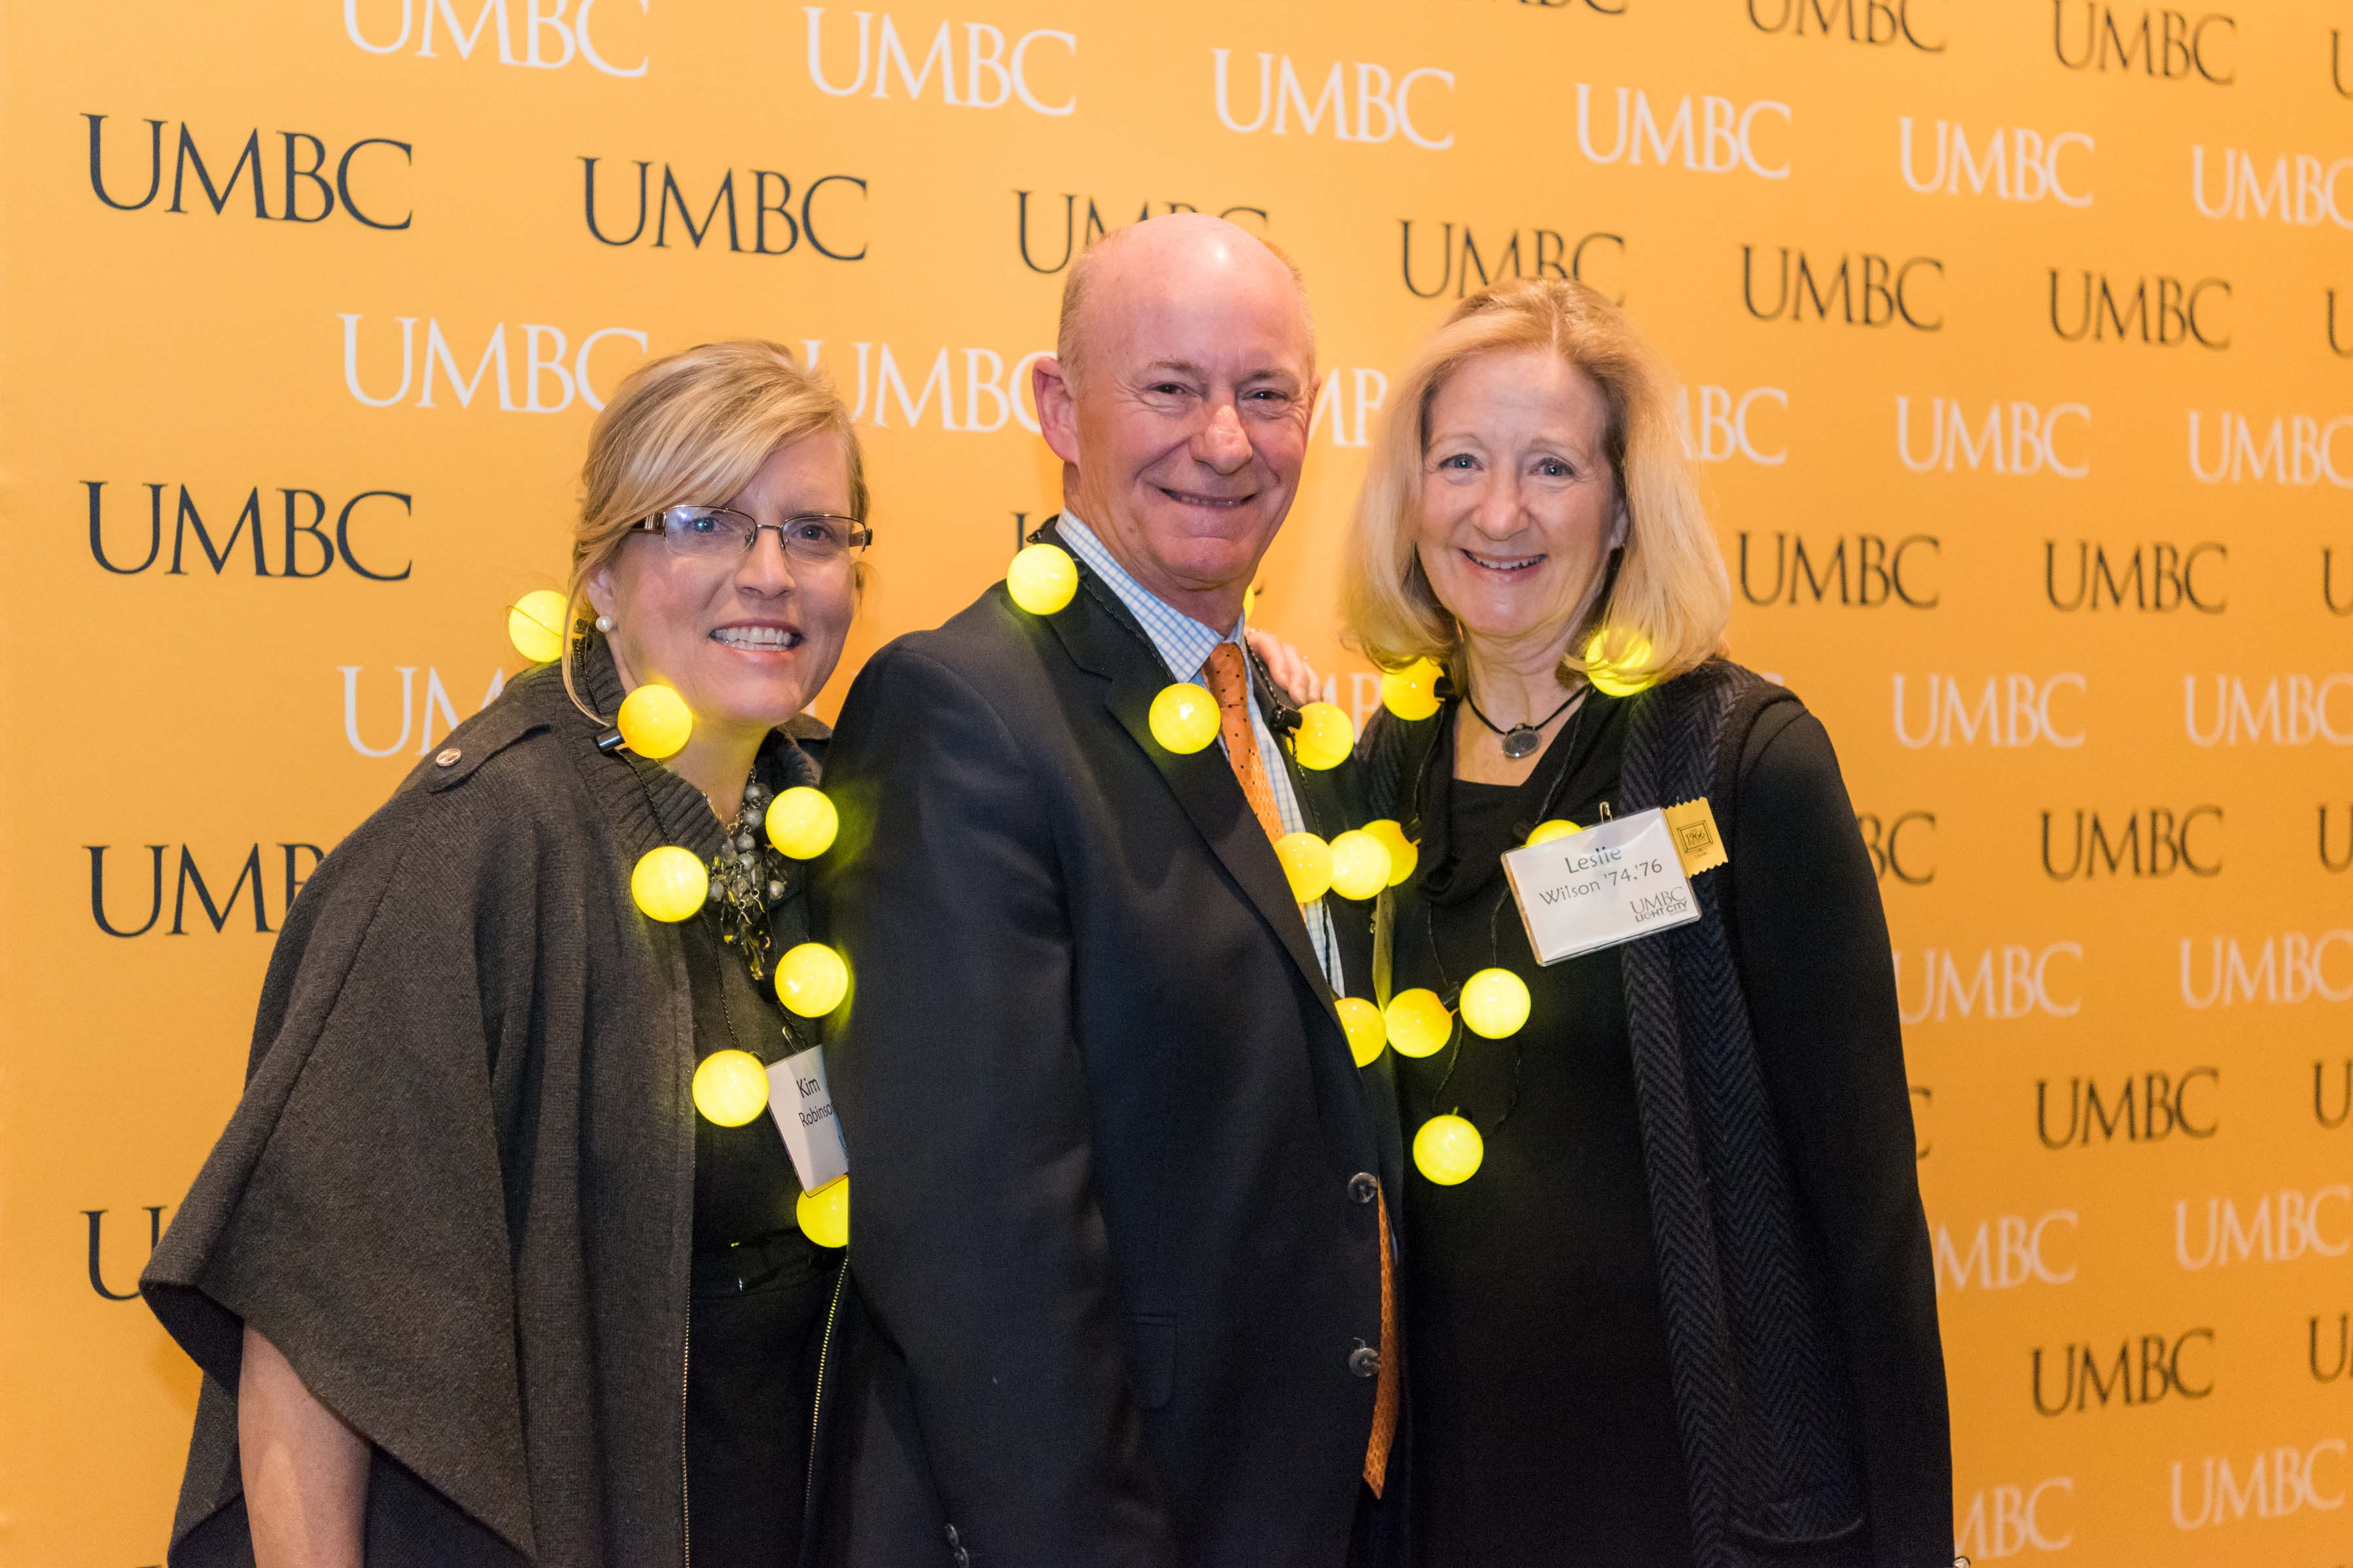 Group of three crowd together in front of UMBC wall